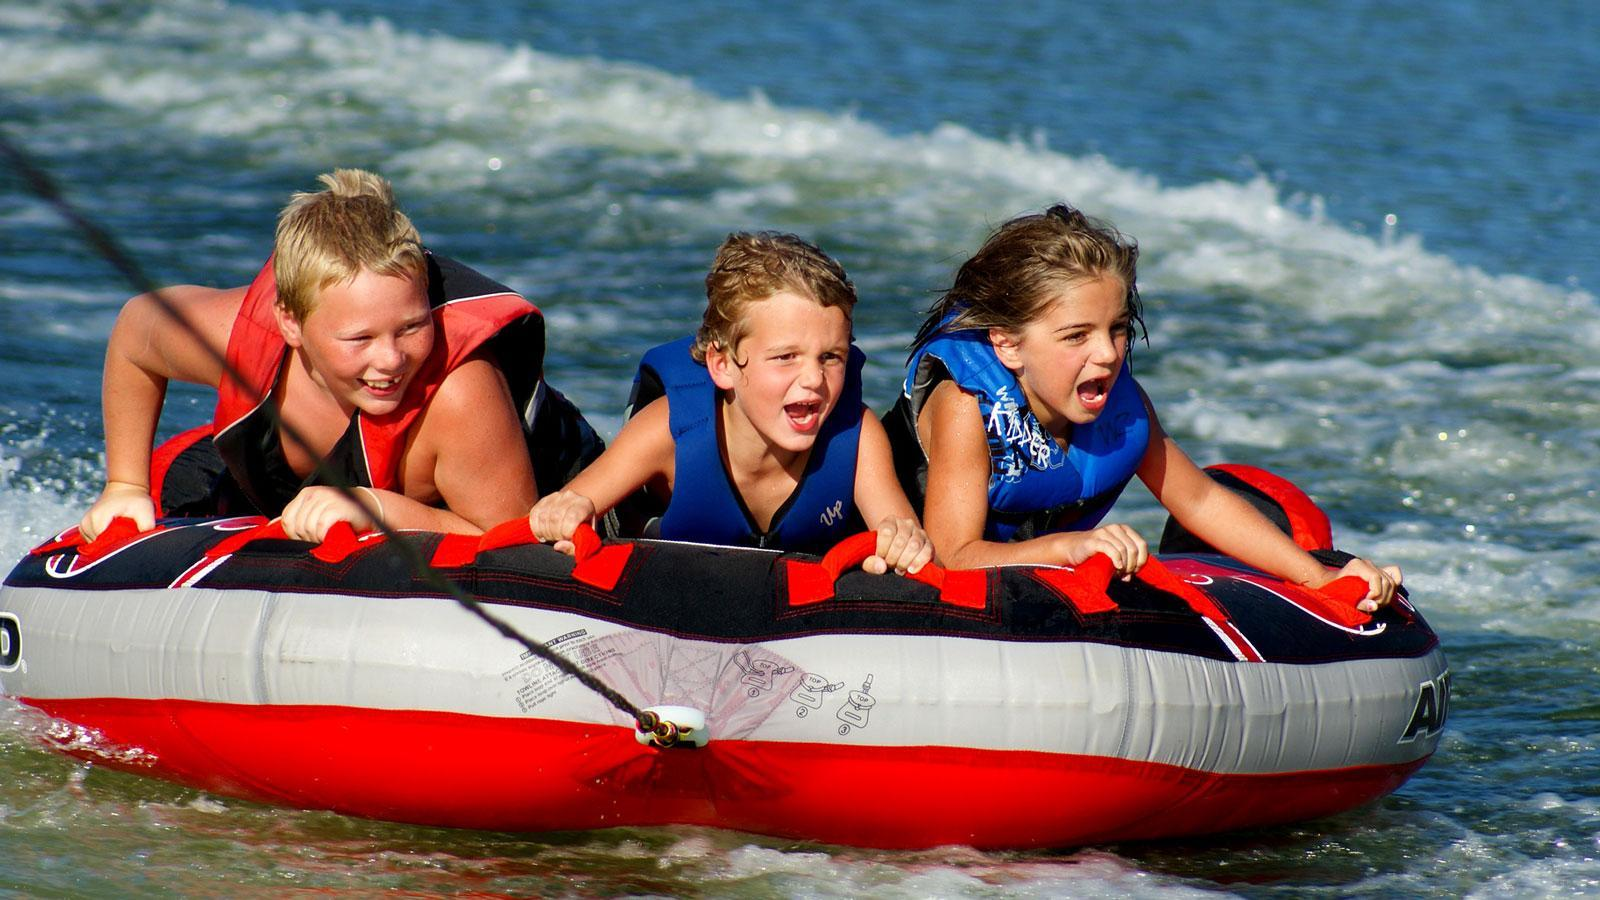 Fun for all ages at Lake Ouachita